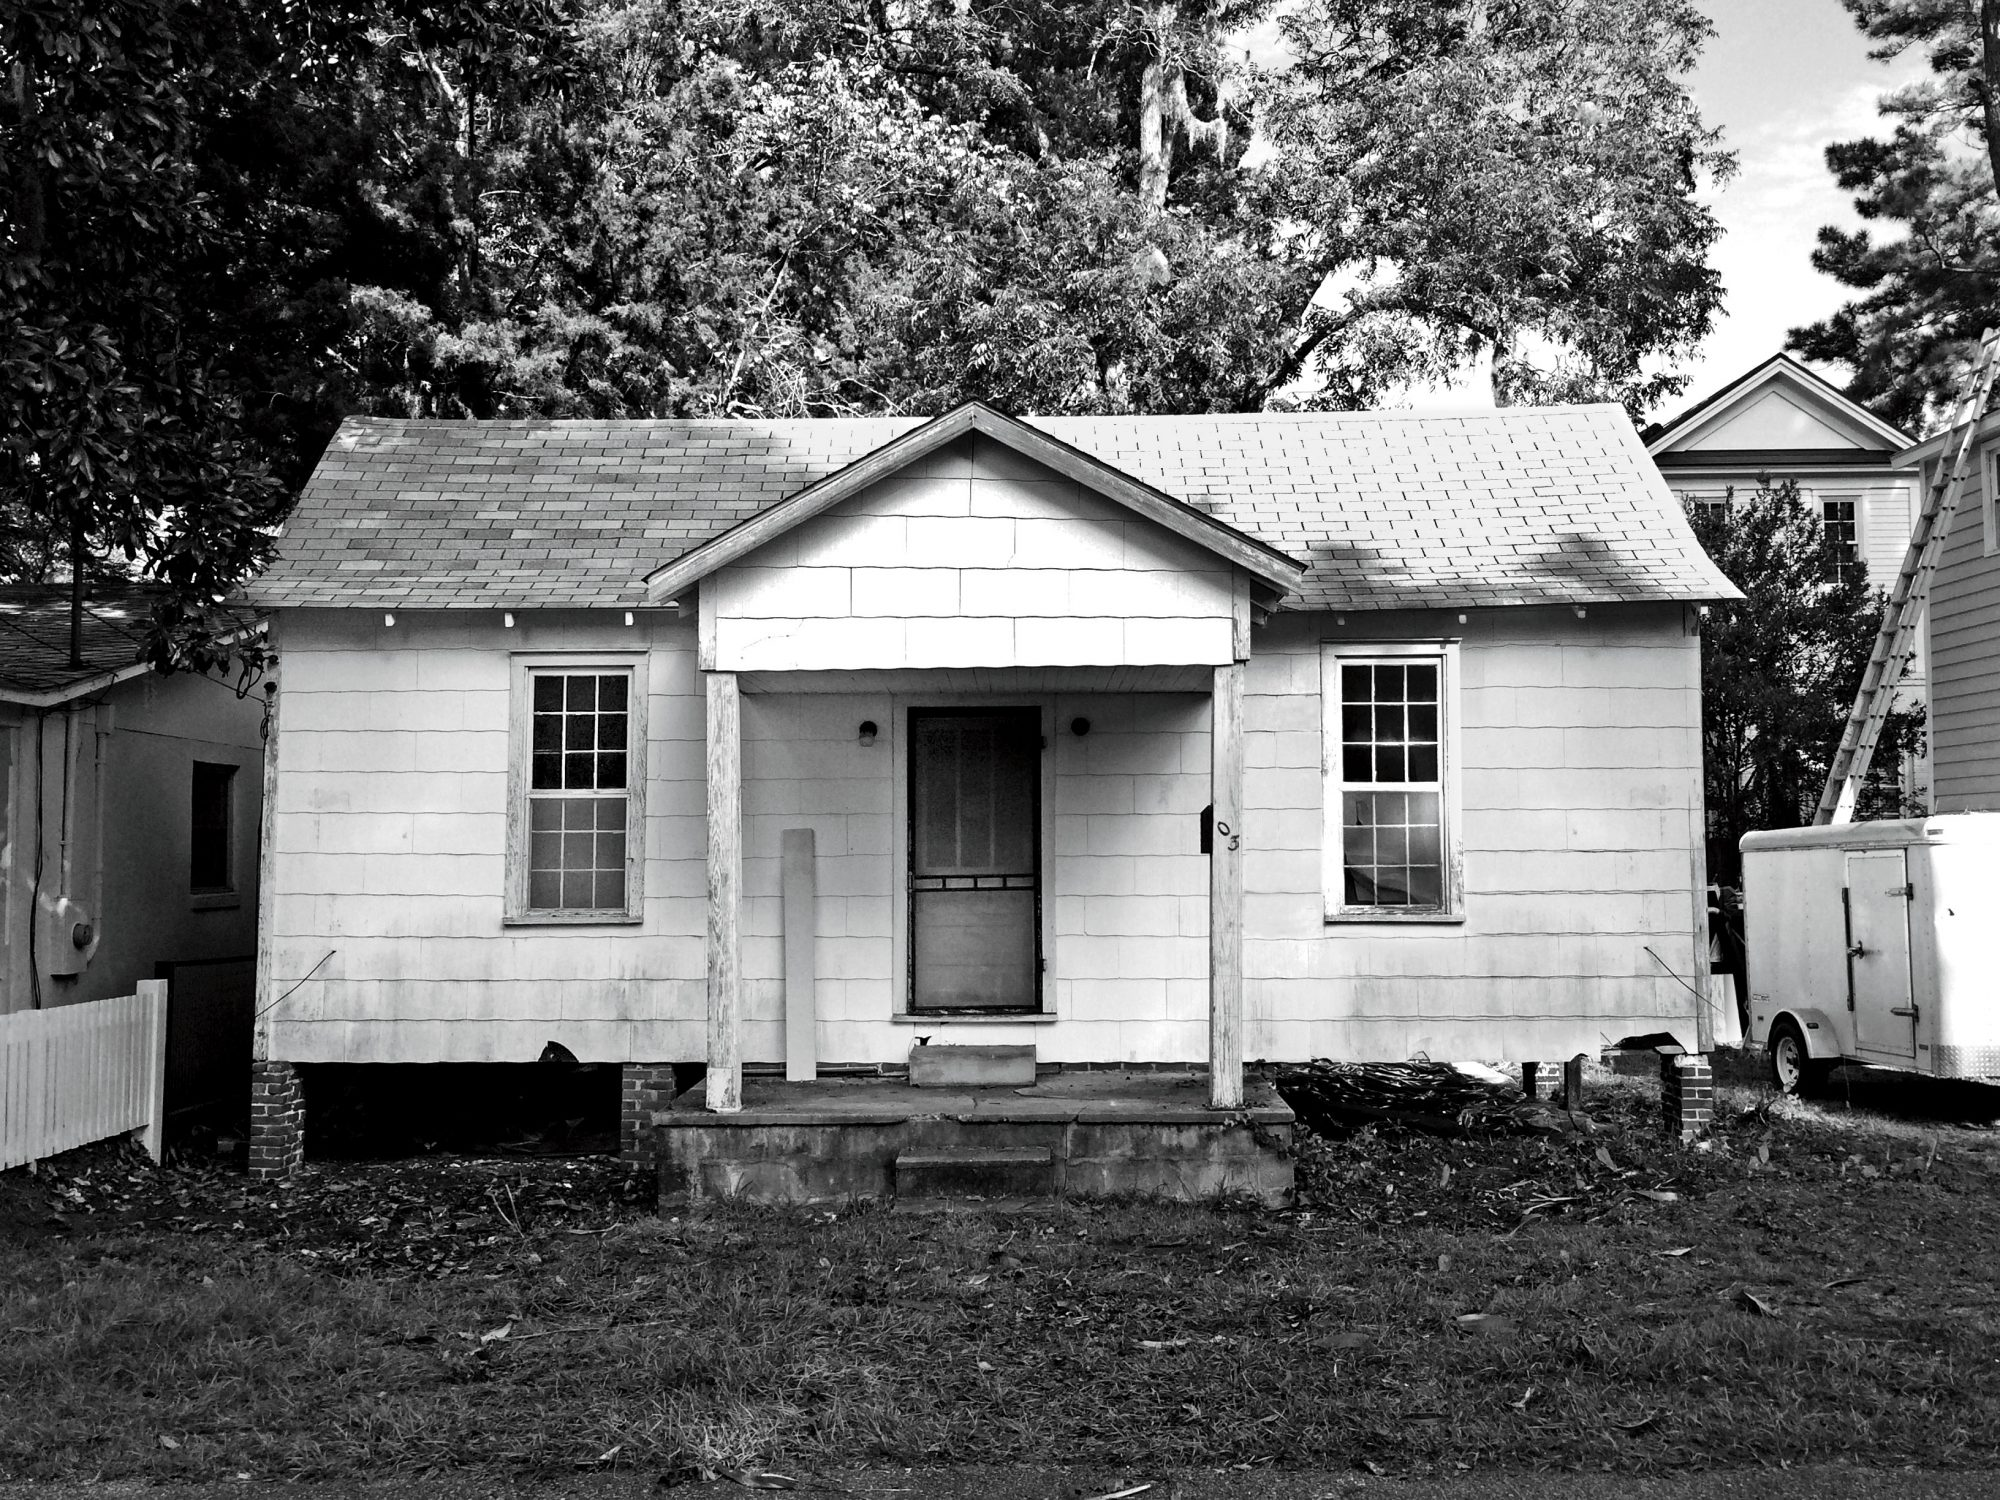 White Cottage with Just a Stoop Before